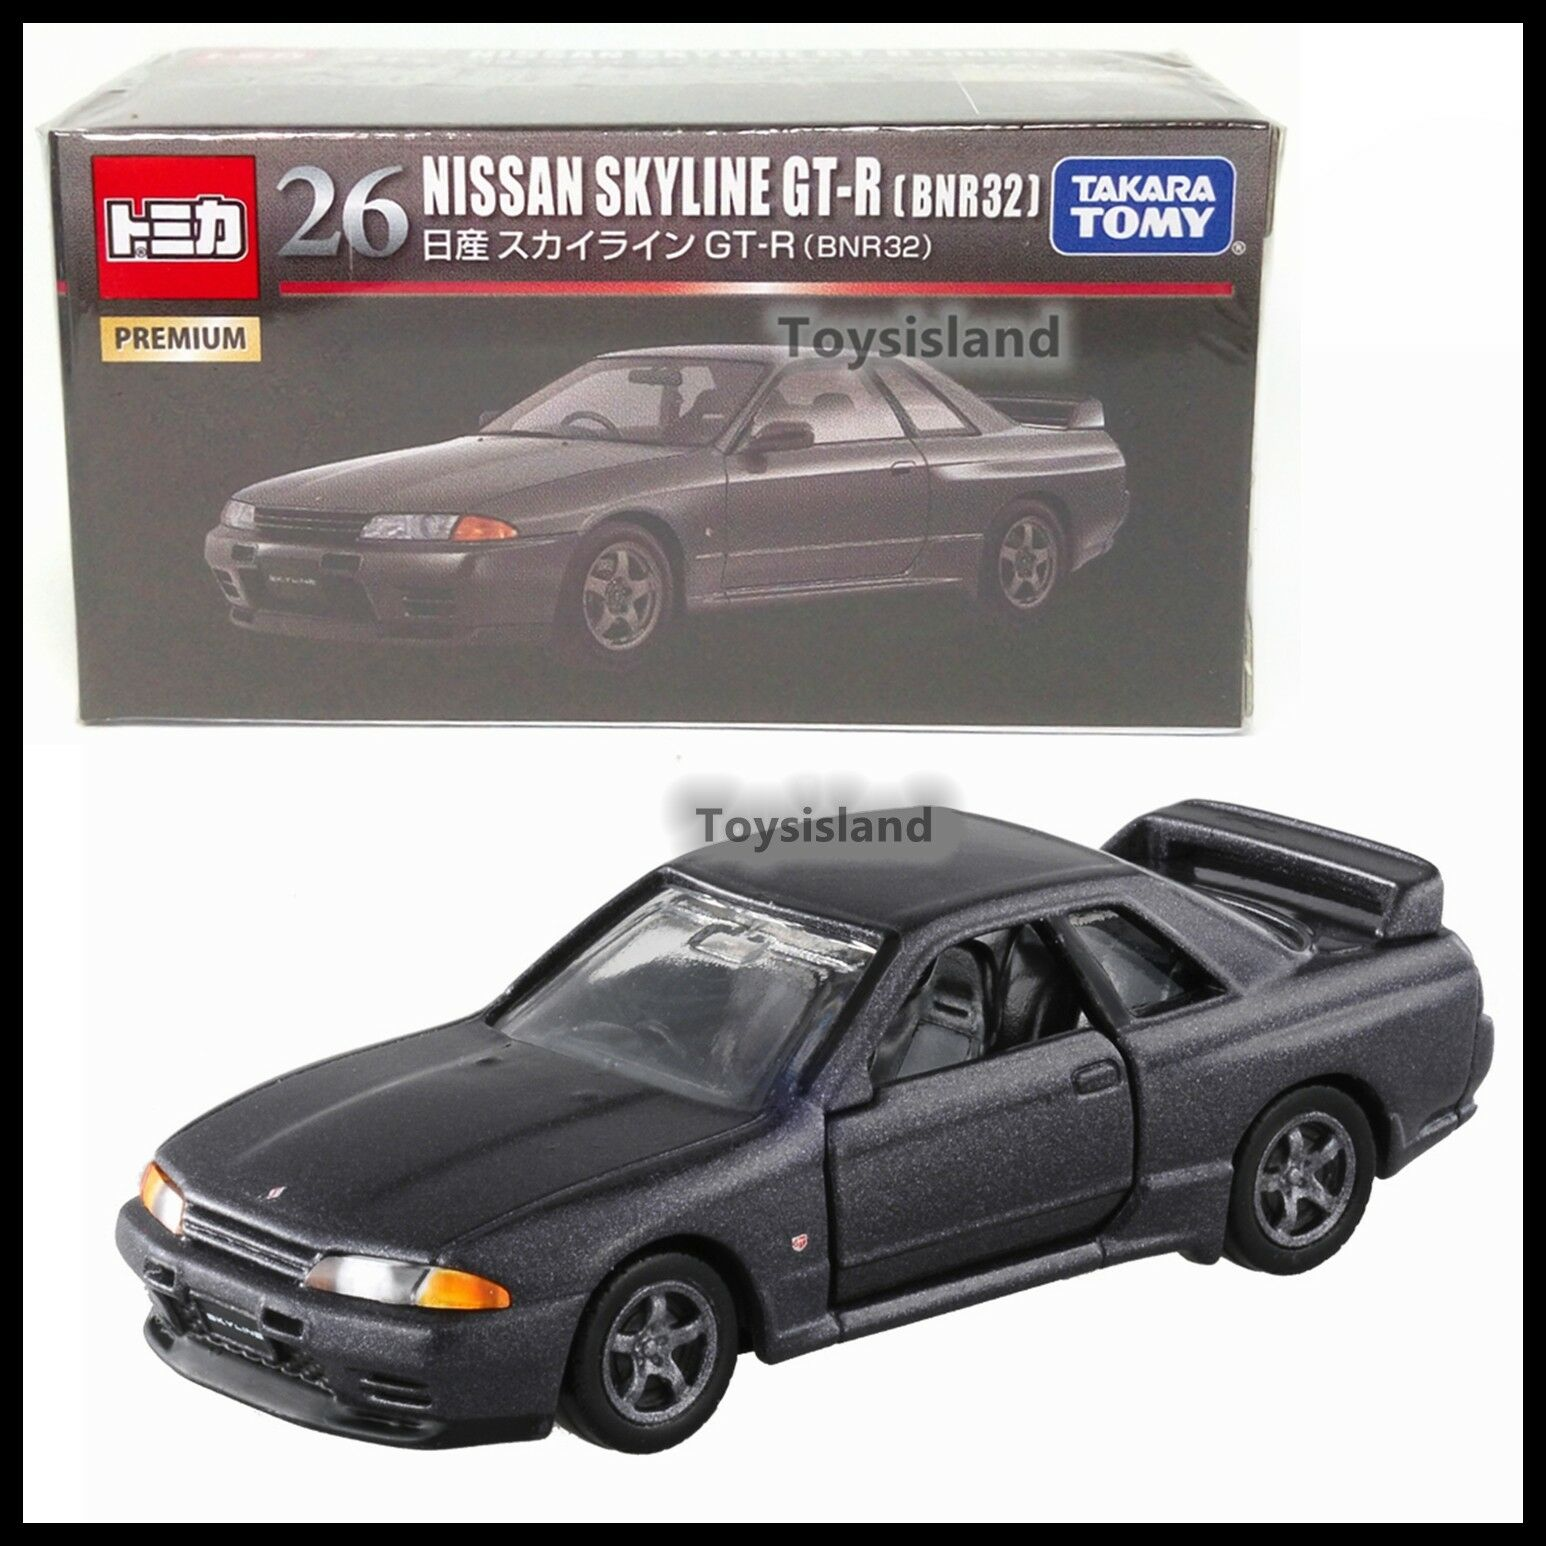 Tomica Premium 26 Nissan Skyline Gt R R32 Bnr32 1 62 Tomy Diecast Initial D Rr32 No 141 Dream Of 9 See More